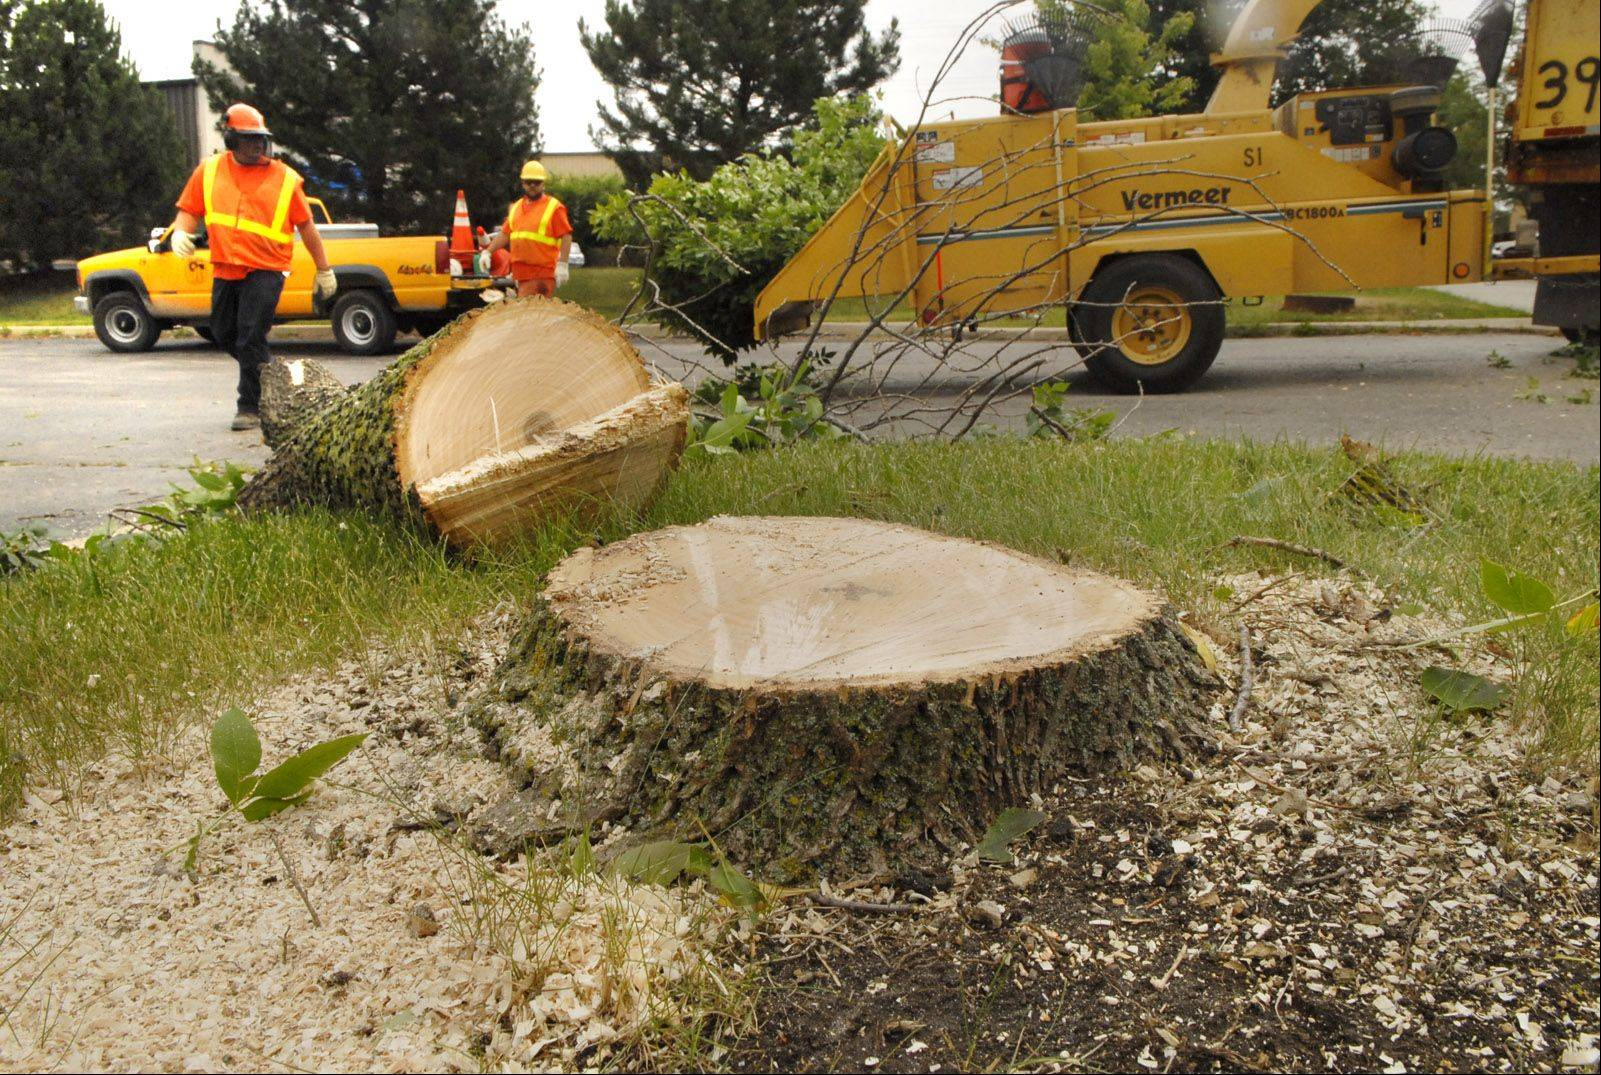 The city of Batavia would still go on private property to trim or remove trees that present an imminent danger, but the city wants to mostly leave it to neighbors to remedy problem trees.